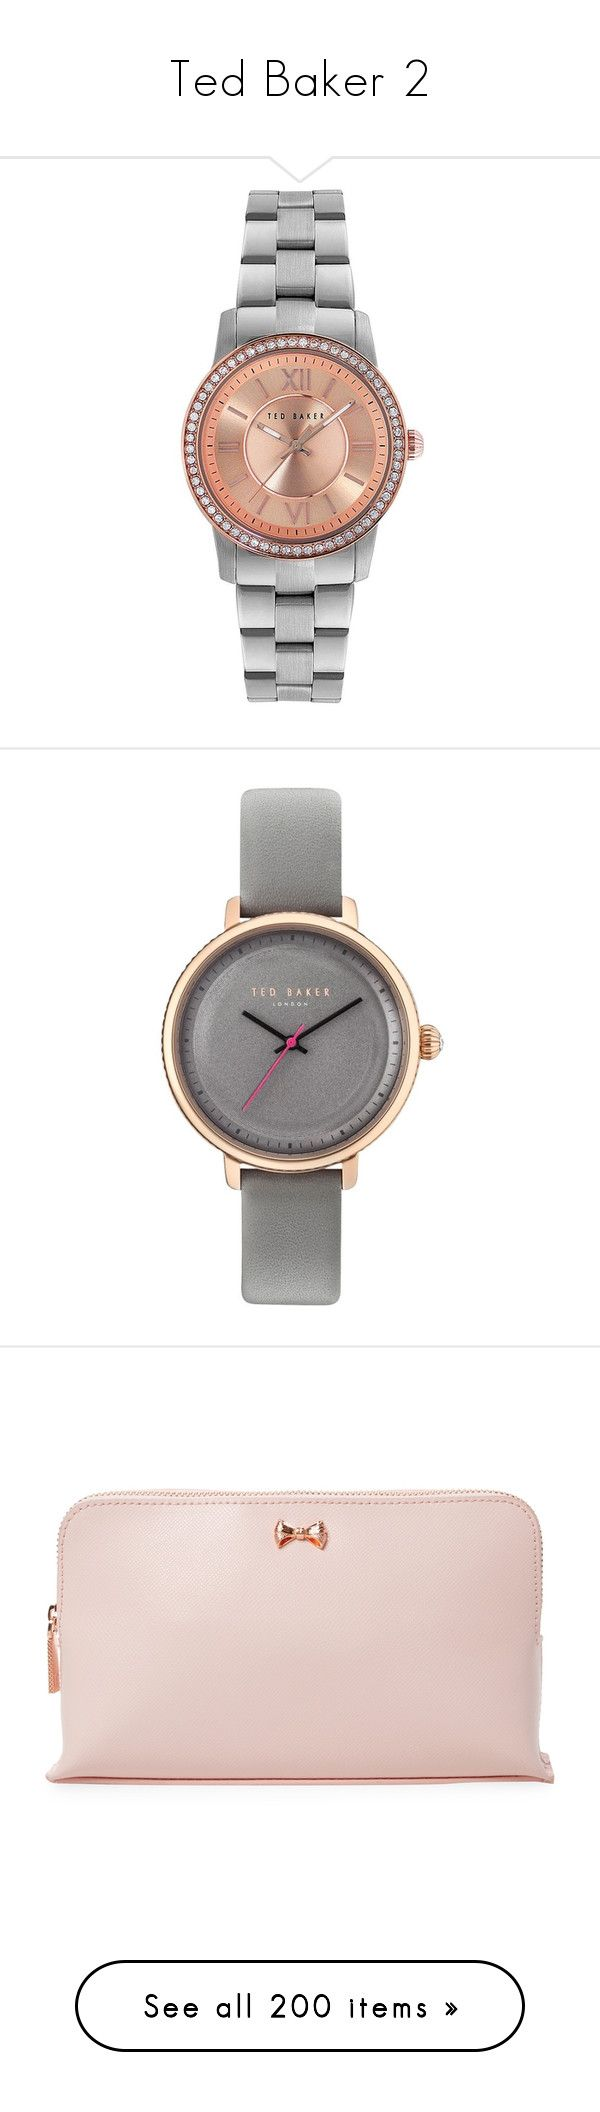 """""""Ted Baker 2"""" by blackman-ann ❤ liked on Polyvore featuring jewelry, watches, stainless steel jewelry, roman numeral jewelry, bezel watches, bezel jewelry, water resistant watches, ted baker watches, ted baker jewellery and ted baker"""